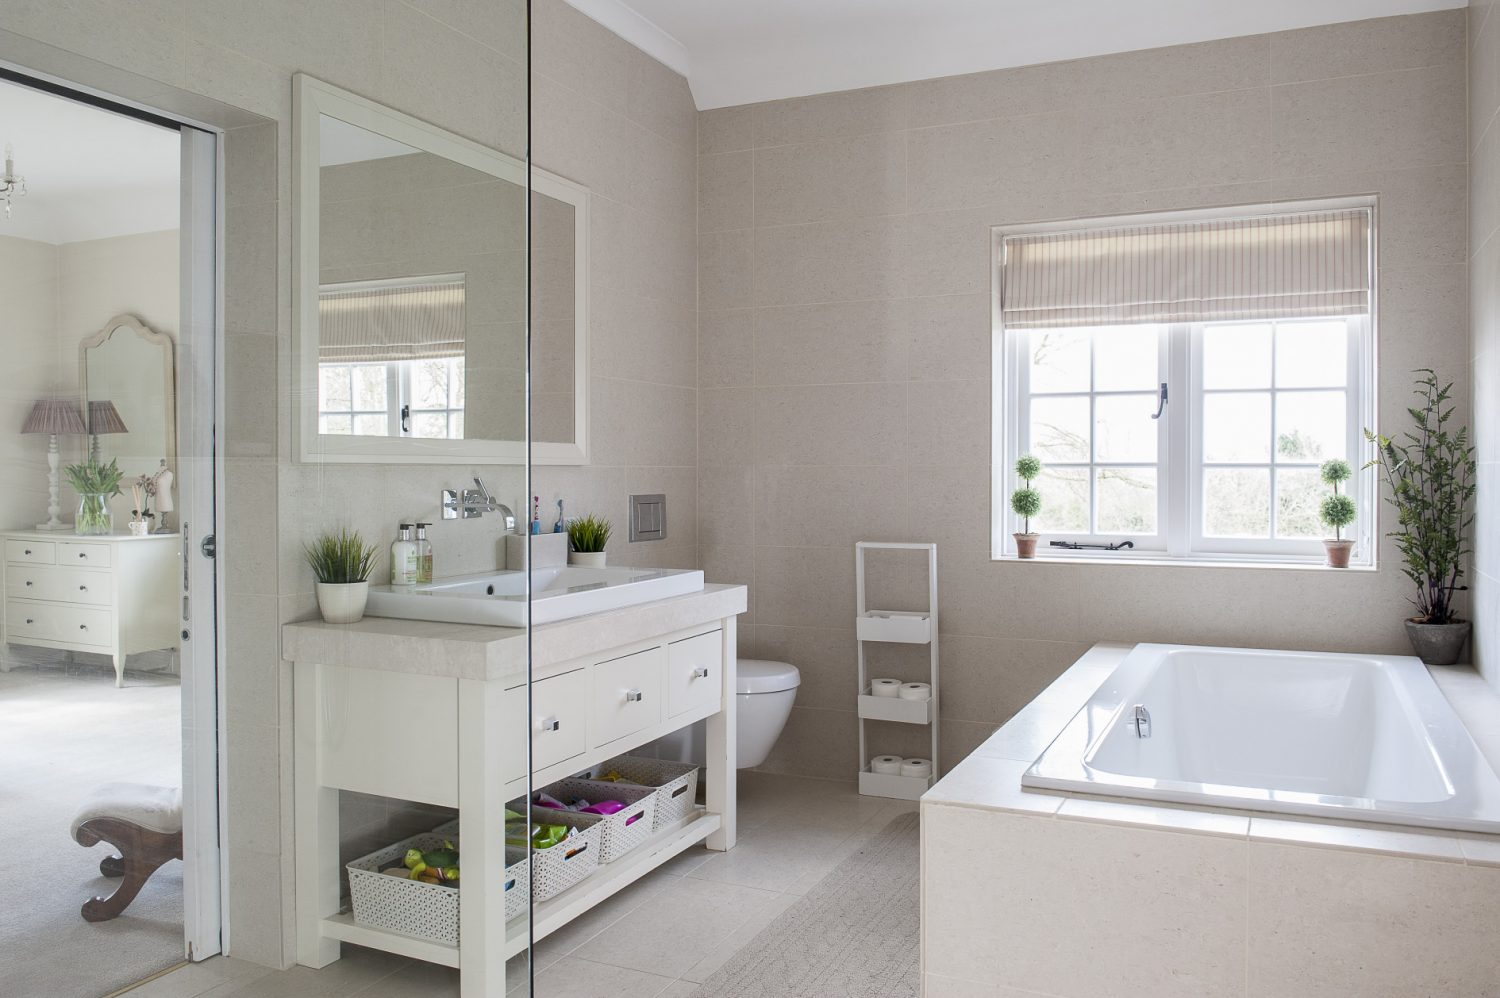 The children's Jack & Jill bathroom has sliding doors to leave maximum space for washing. Pale travertine tiles cover the floor and walls and the room was tanked to cope with splashes from the huge bath and walk-in shower